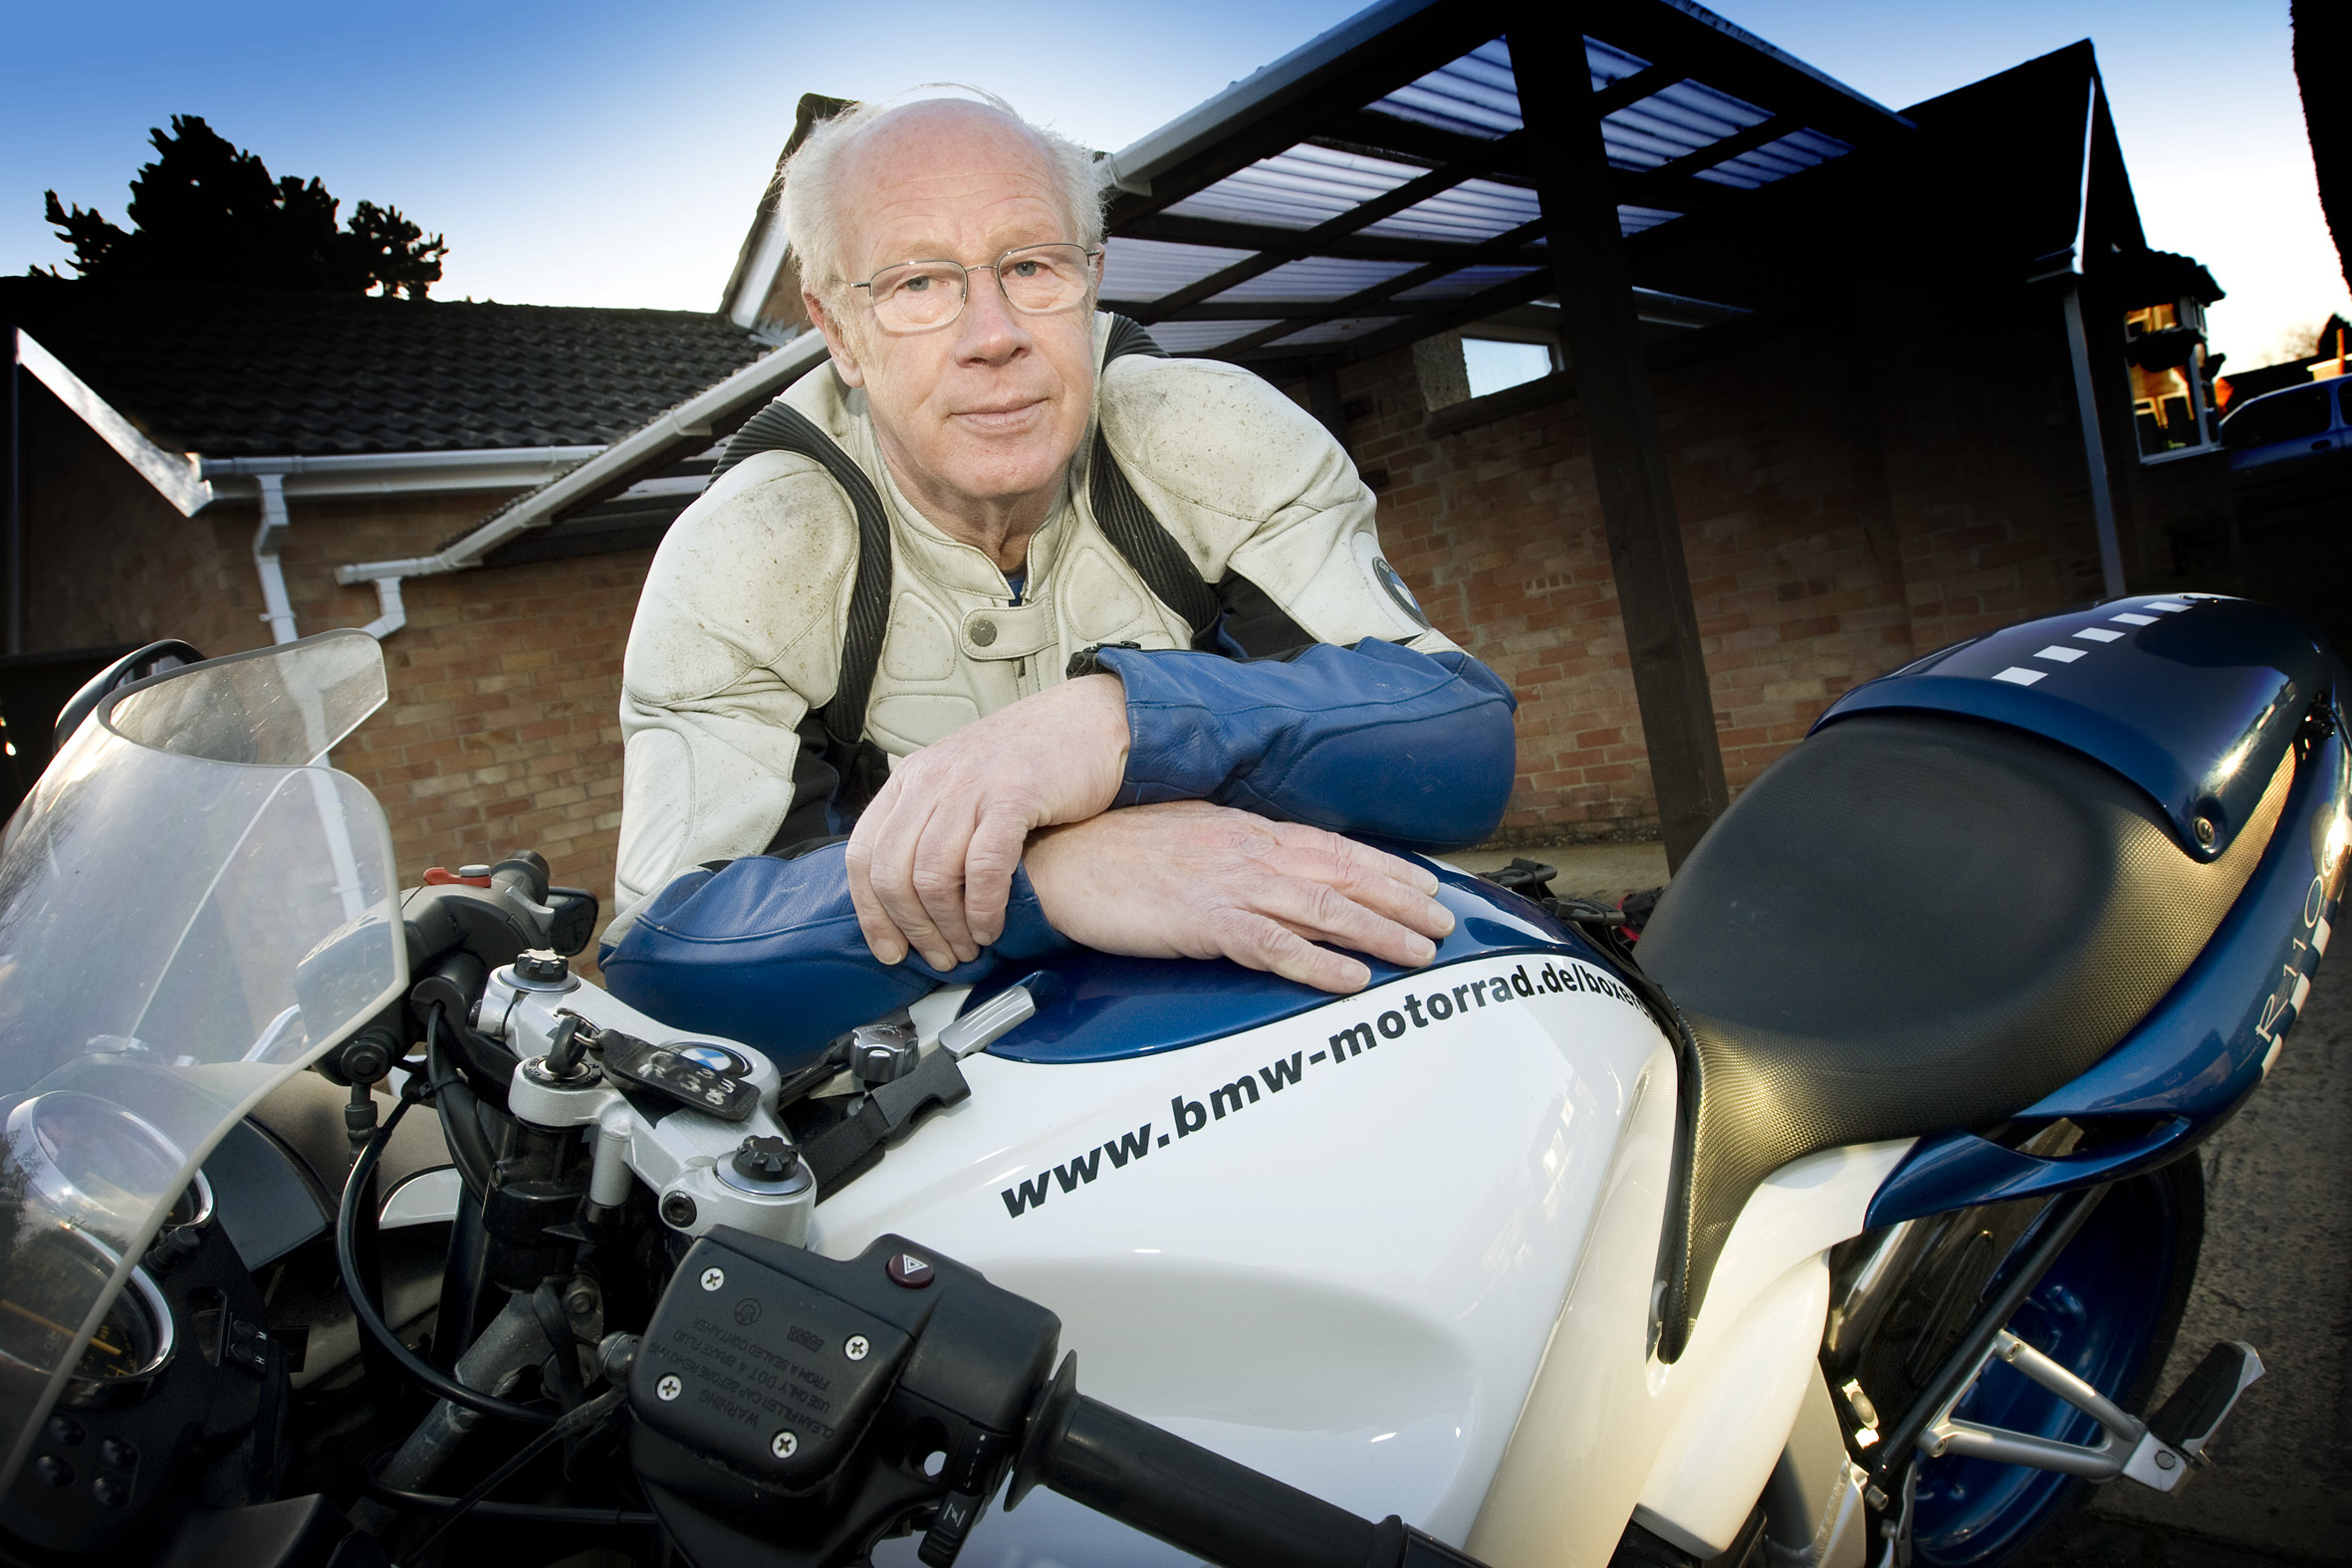 John Wheeler pictured with his motorbike in 2011. Pic: Damian Halliwell